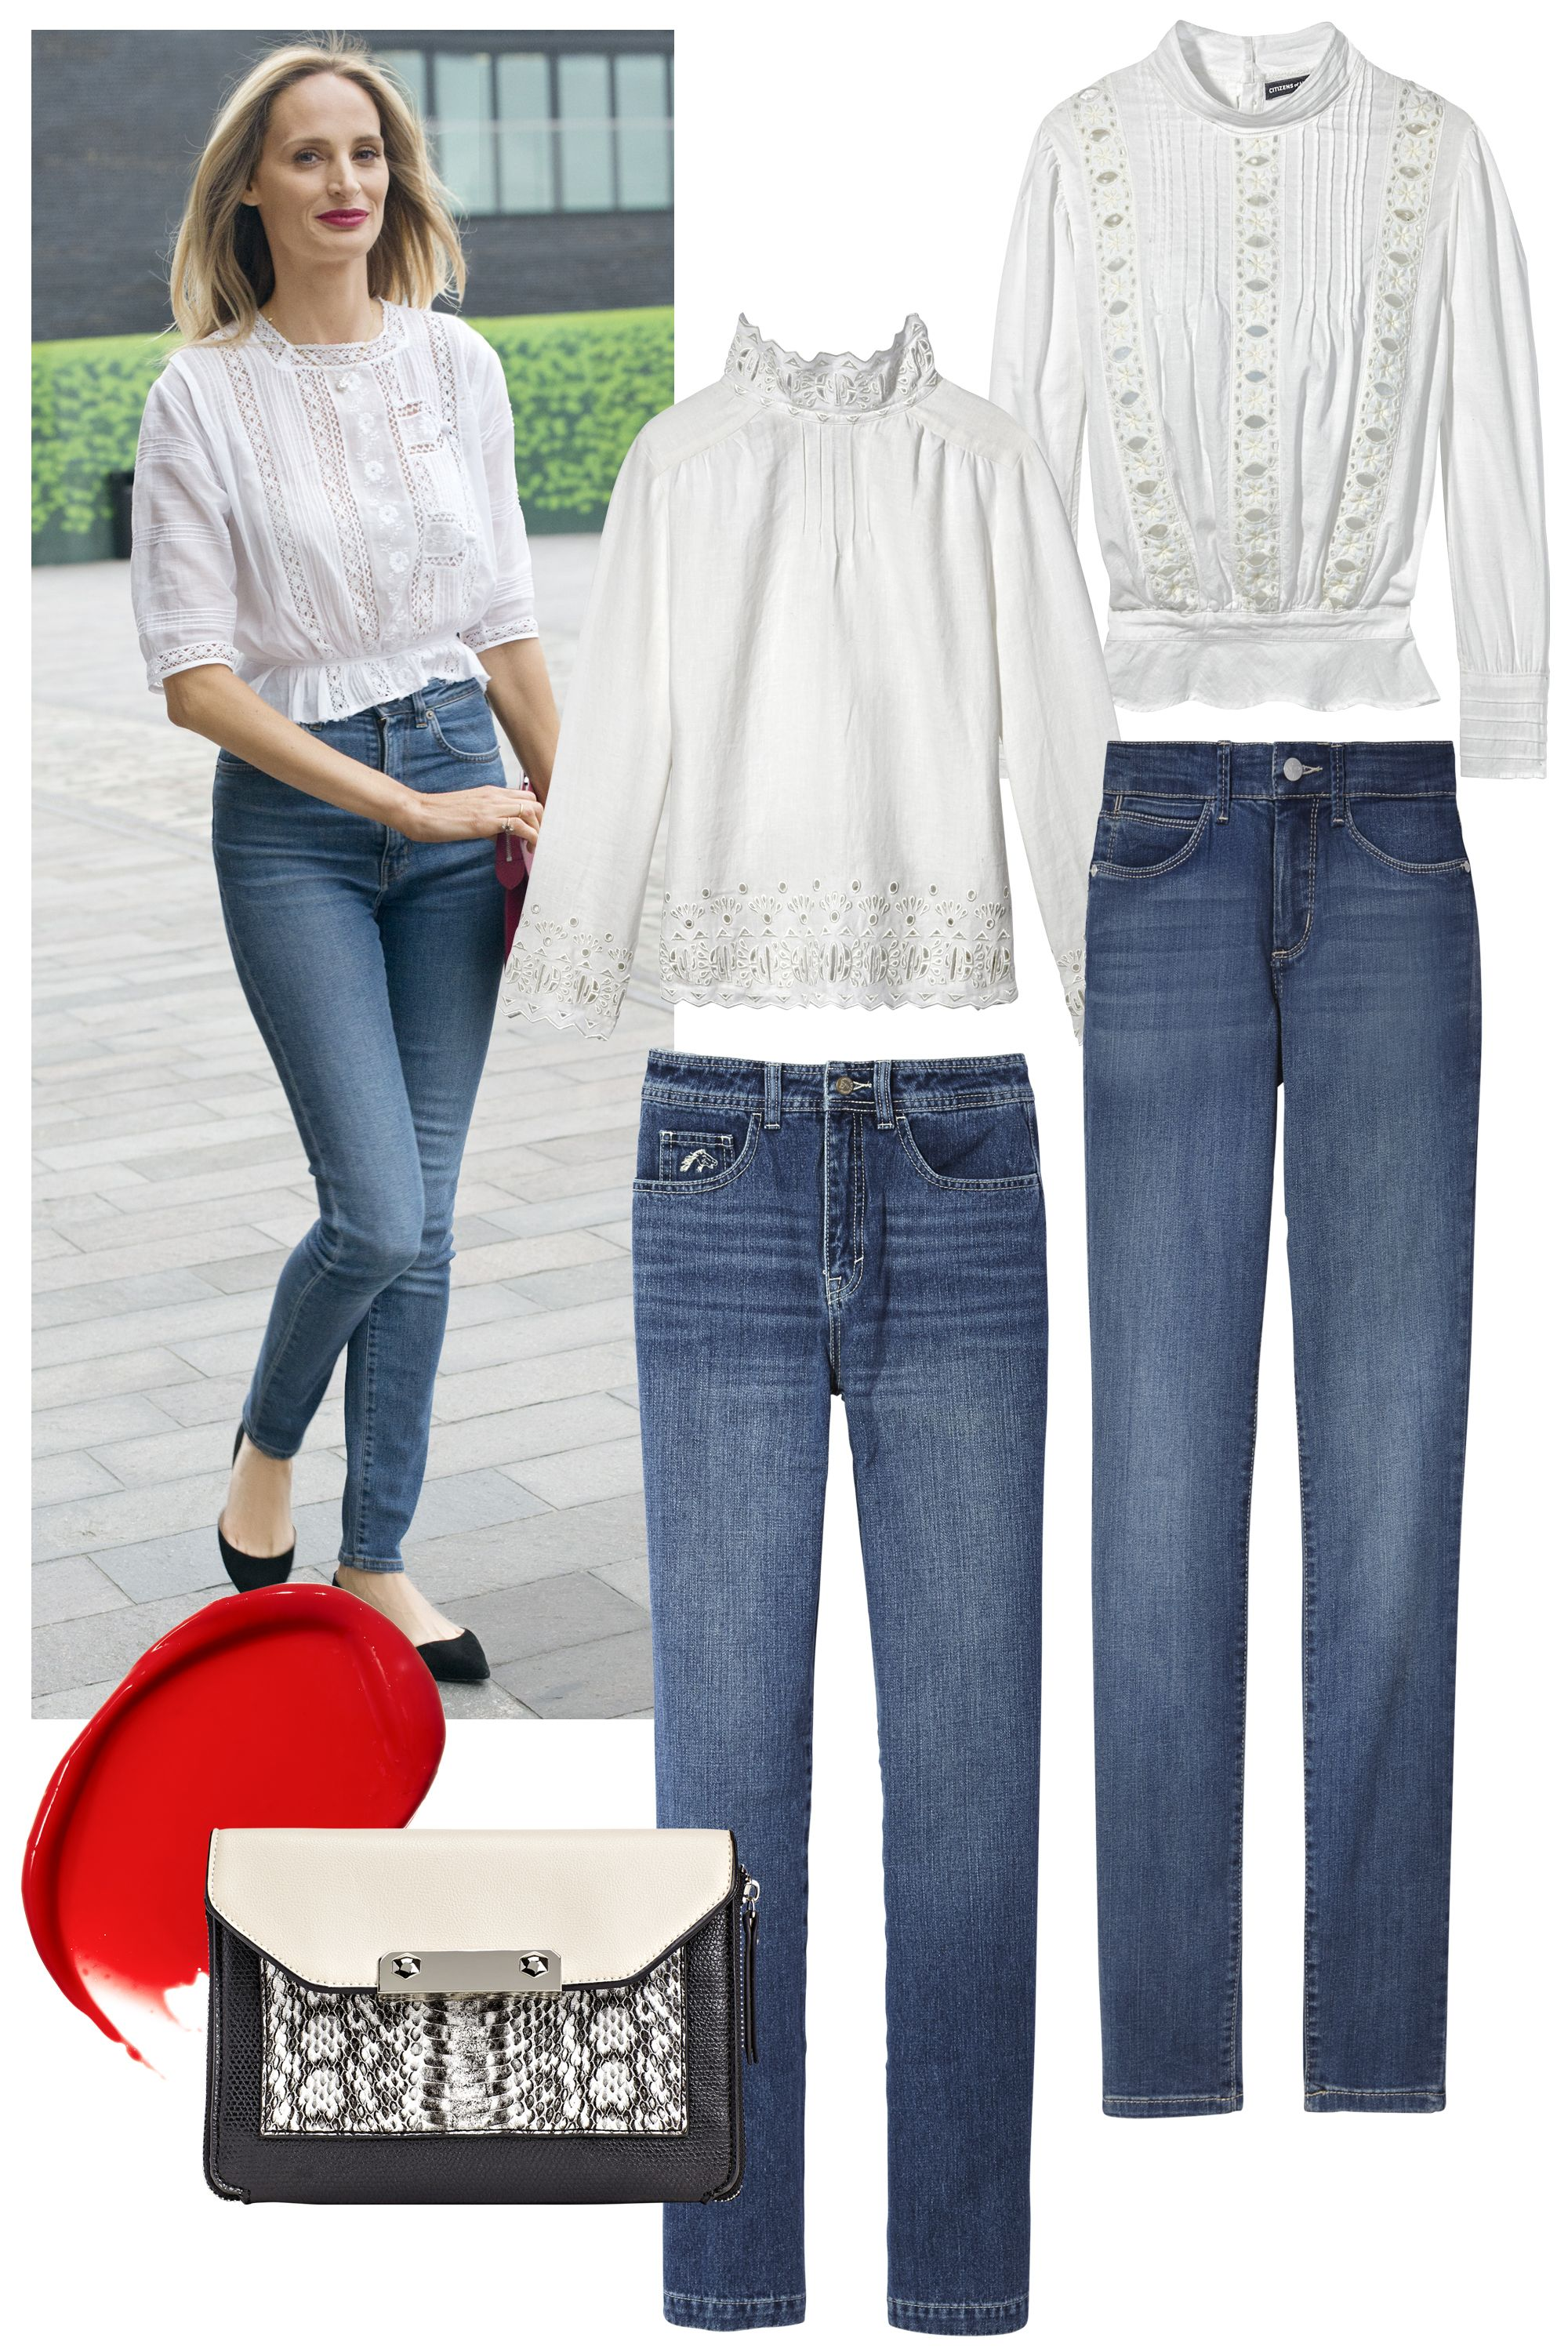 "<p>The skinny jean gets romantic when worn with an ultrafeminine blouse. Channel Moda Operandi's Lauren Santo Domingo by accenting the look with ballet flats and a bright-red lip.</p><p><strong>Citizens of Humanity </strong>blouse, $398, <a href=""http://www.shopbop.com/"">shopbop.com</a>; <strong>Bliss and Mischief </strong>blouse, $438,  <a href=""http://www.blissandmischief.com/"">blissandmischief.com</a>; <strong>NYDJ</strong> jeans, $124, <a href=""http://www.nydj.com/"">nydj.com</a>; <strong>The Jordache Look</strong> jeans, $108,  <a href=""http://www.jordache.com/"">jordache.com</a>; <span class=""redactor-invisible-space"" style=""line-height: 1.6em; background-color: initial;""><strong>Chanel </strong>Rouge Coco Shine Hydrating Sheer Lipshine in Shipshape, $37,  <a href=""http://www.chanel.com/"">chanel.com</a>; <strong>Aldo</strong> bag, $45. <a href=""http://www.aldoshoes.com/"">aldoshoes.com</a>. </span><br></p>"